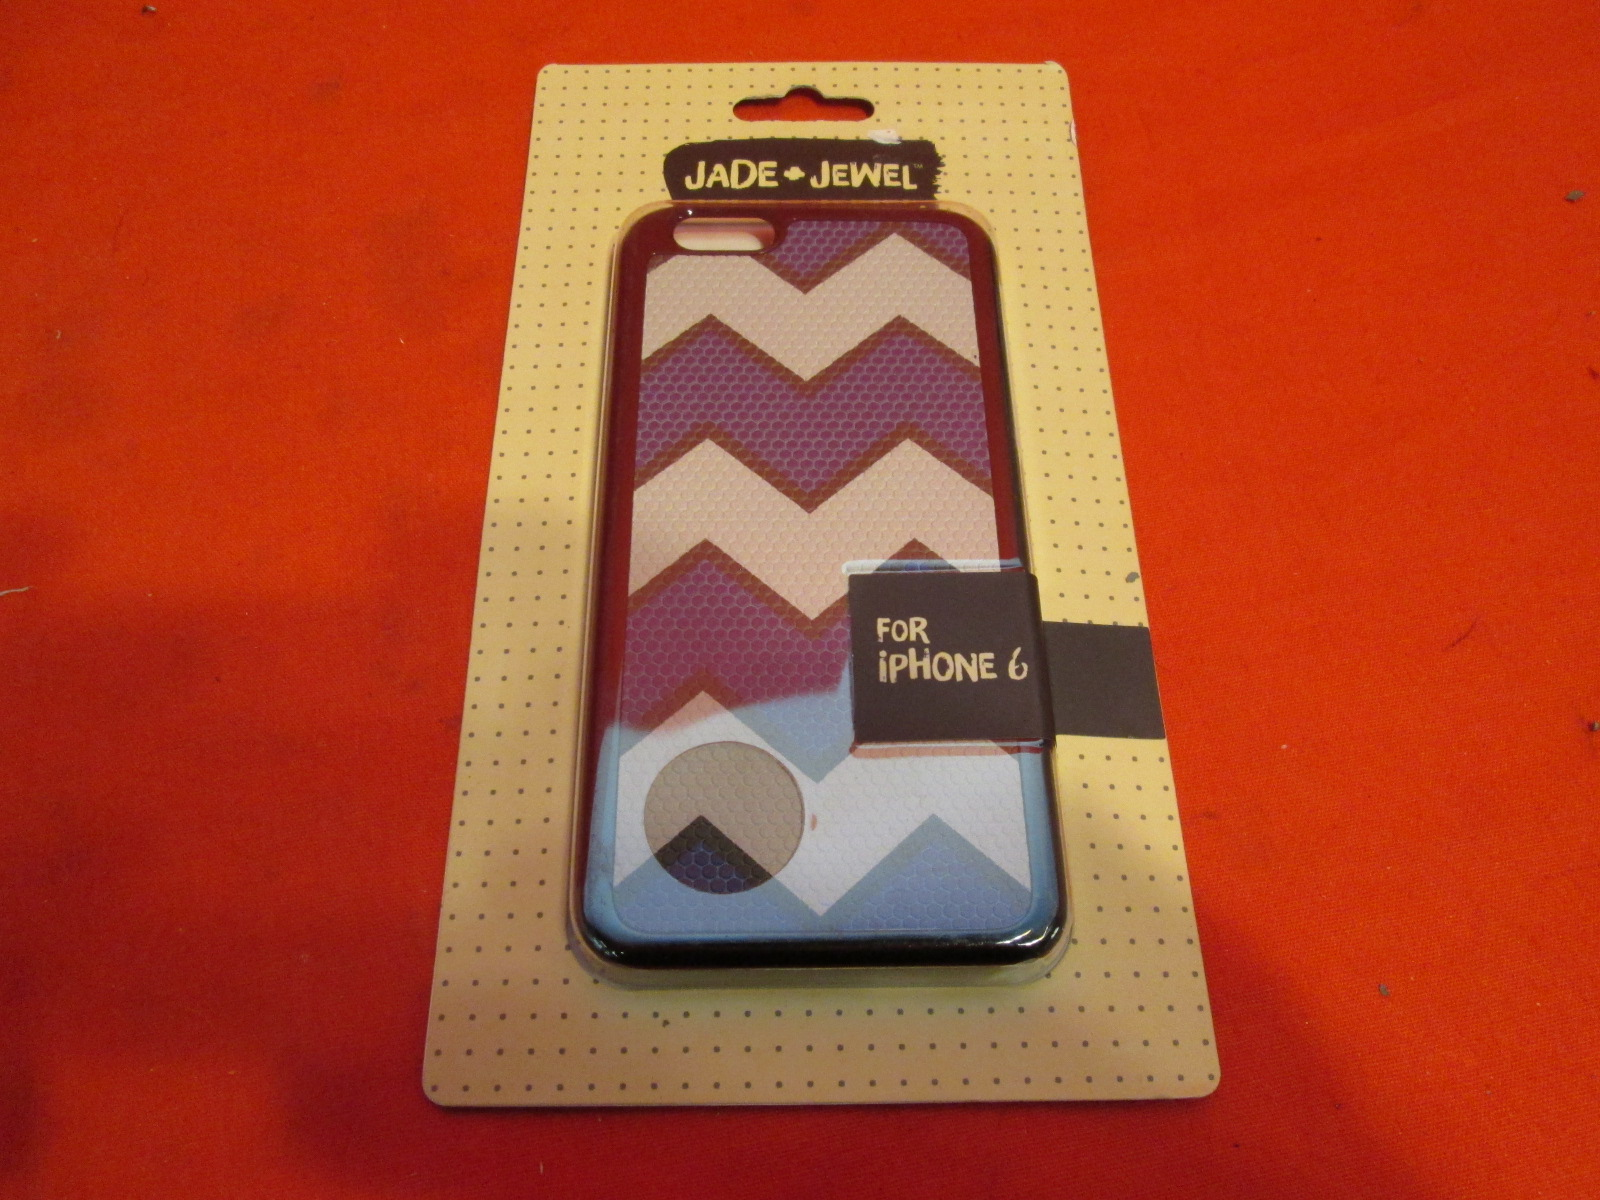 Jade Jewel Chevron Snakeskin Cell Phone Case For iPhone 6 Blue/gray